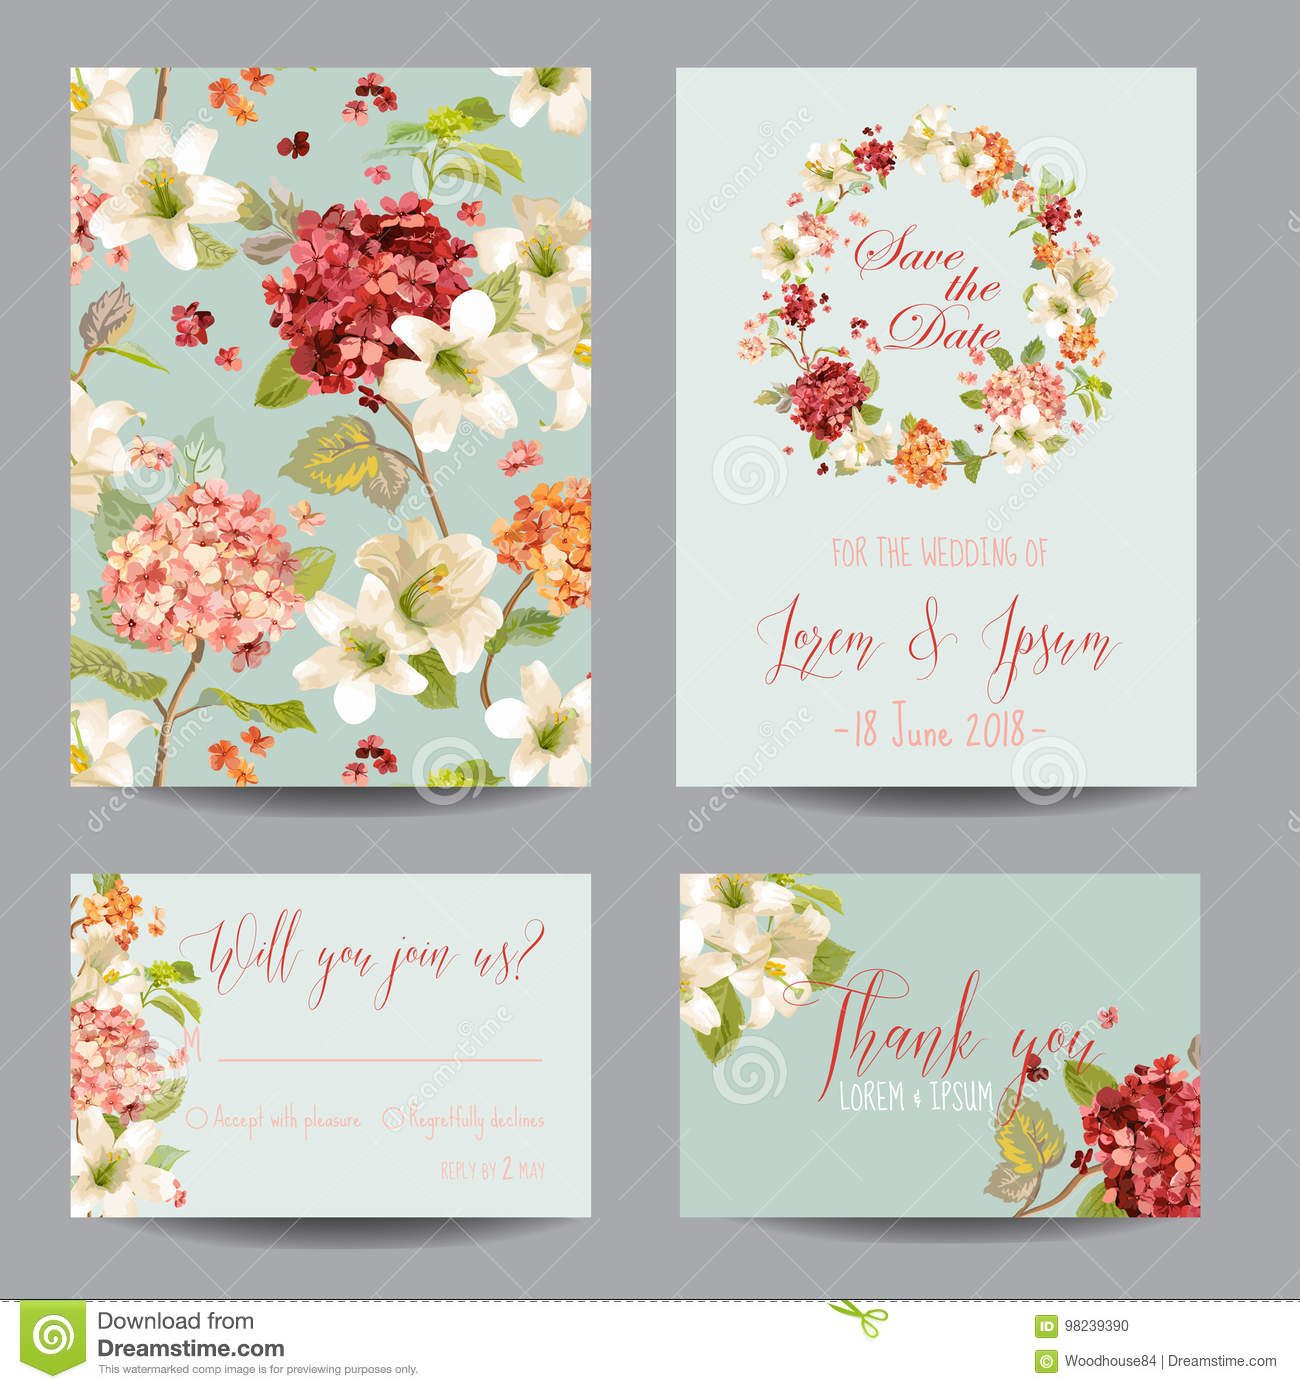 Autumn Vintage Hortensia Flowers Save the Date Card for Wedding, Invitation, Party